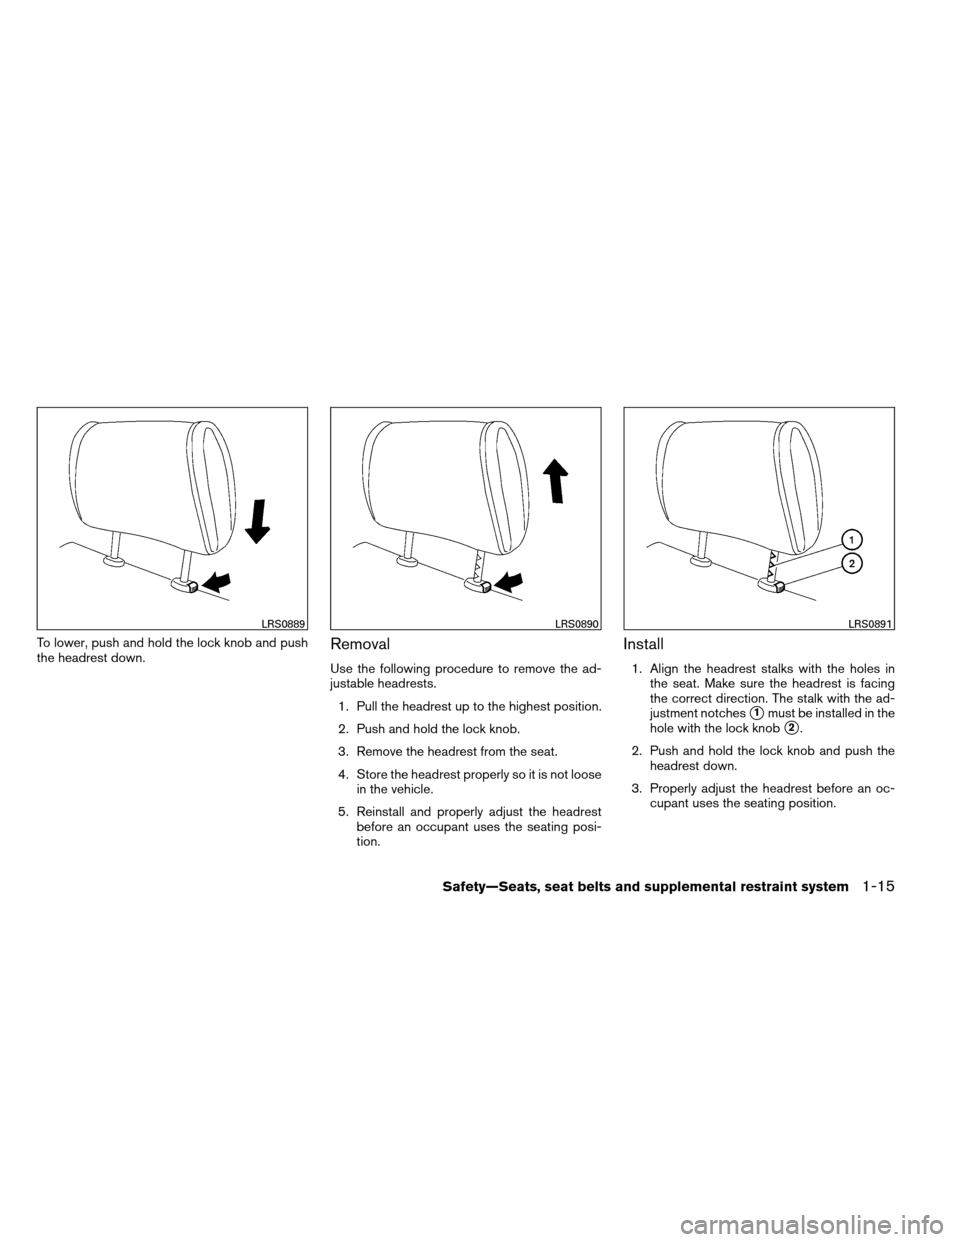 NISSAN ARMADA 2013 1.G Owners Guide To lower, push and hold the lock knob and push the headrest down.Removal Use the following procedure to remove the ad- justable headrests.1. Pull the headrest up to the highest position. 2. Push and h